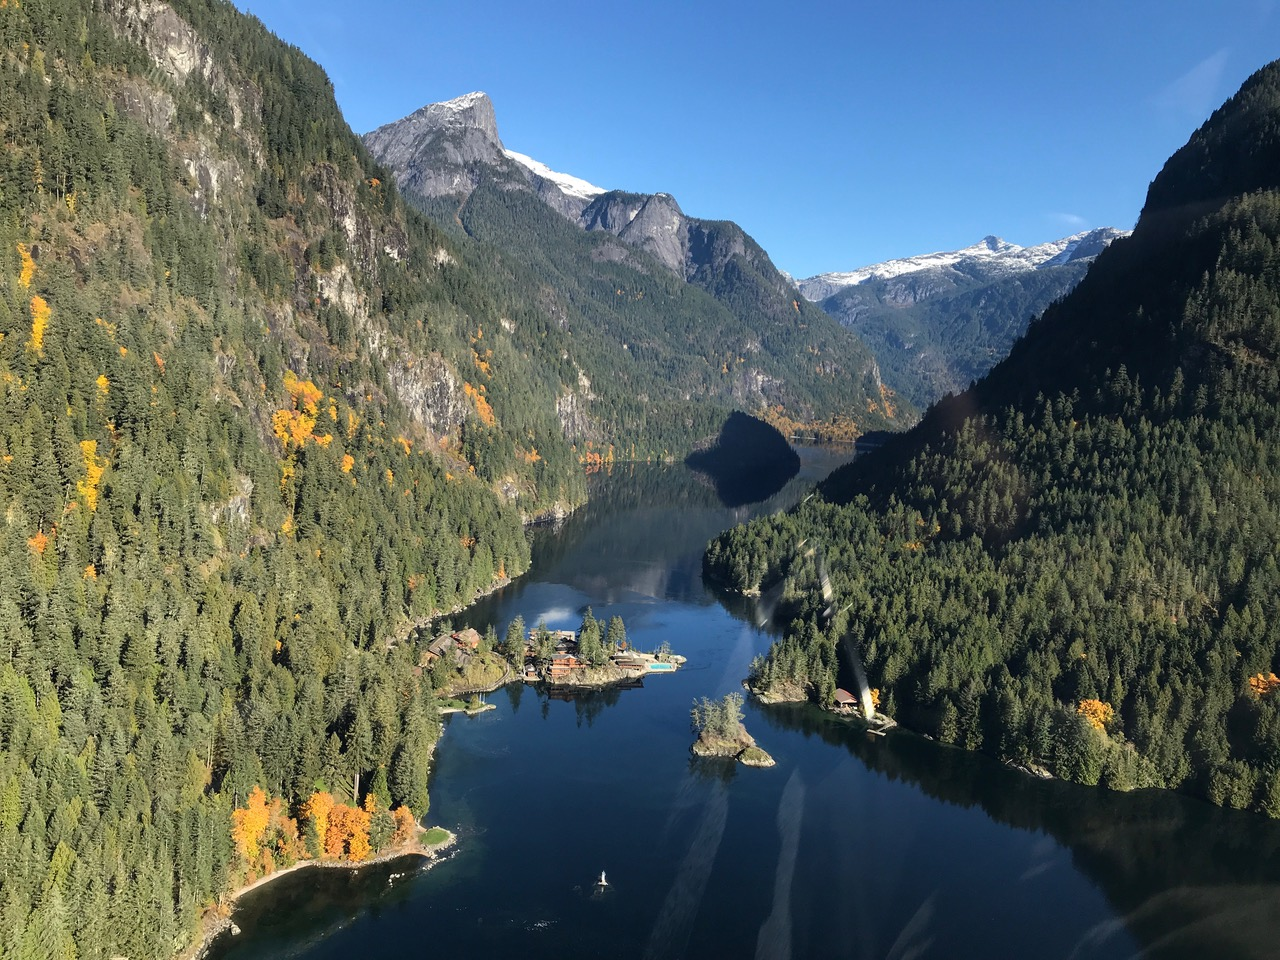 HELI & BOAT EXCURSION TO PRINCESS LOUISA INLET